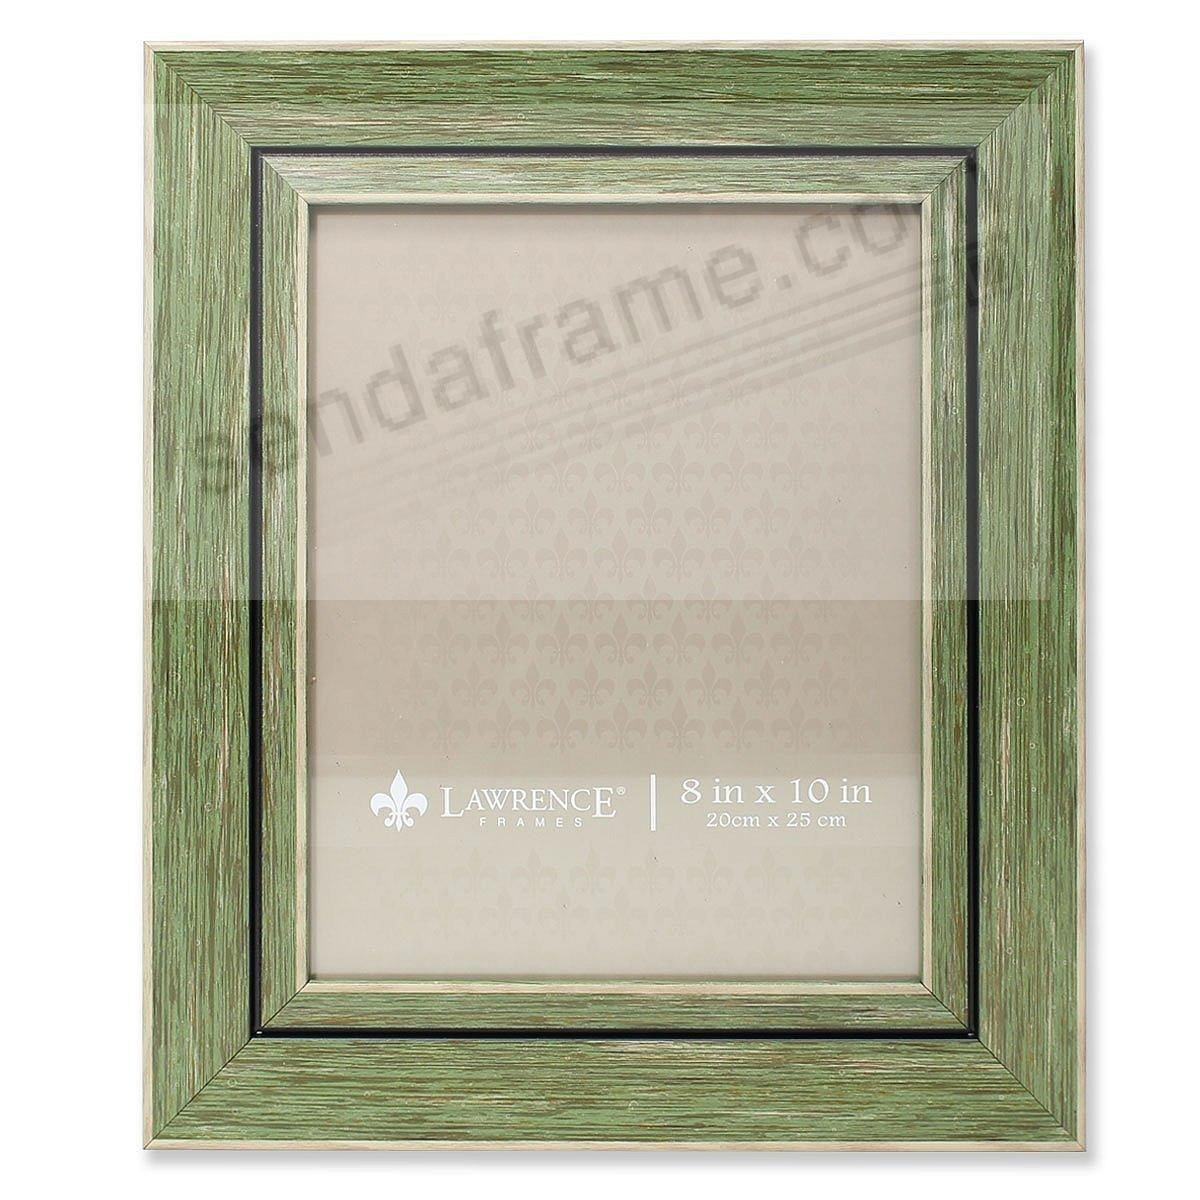 Weathered/Antique Green Angled Wood Frame by Lawrence® - Picture ...